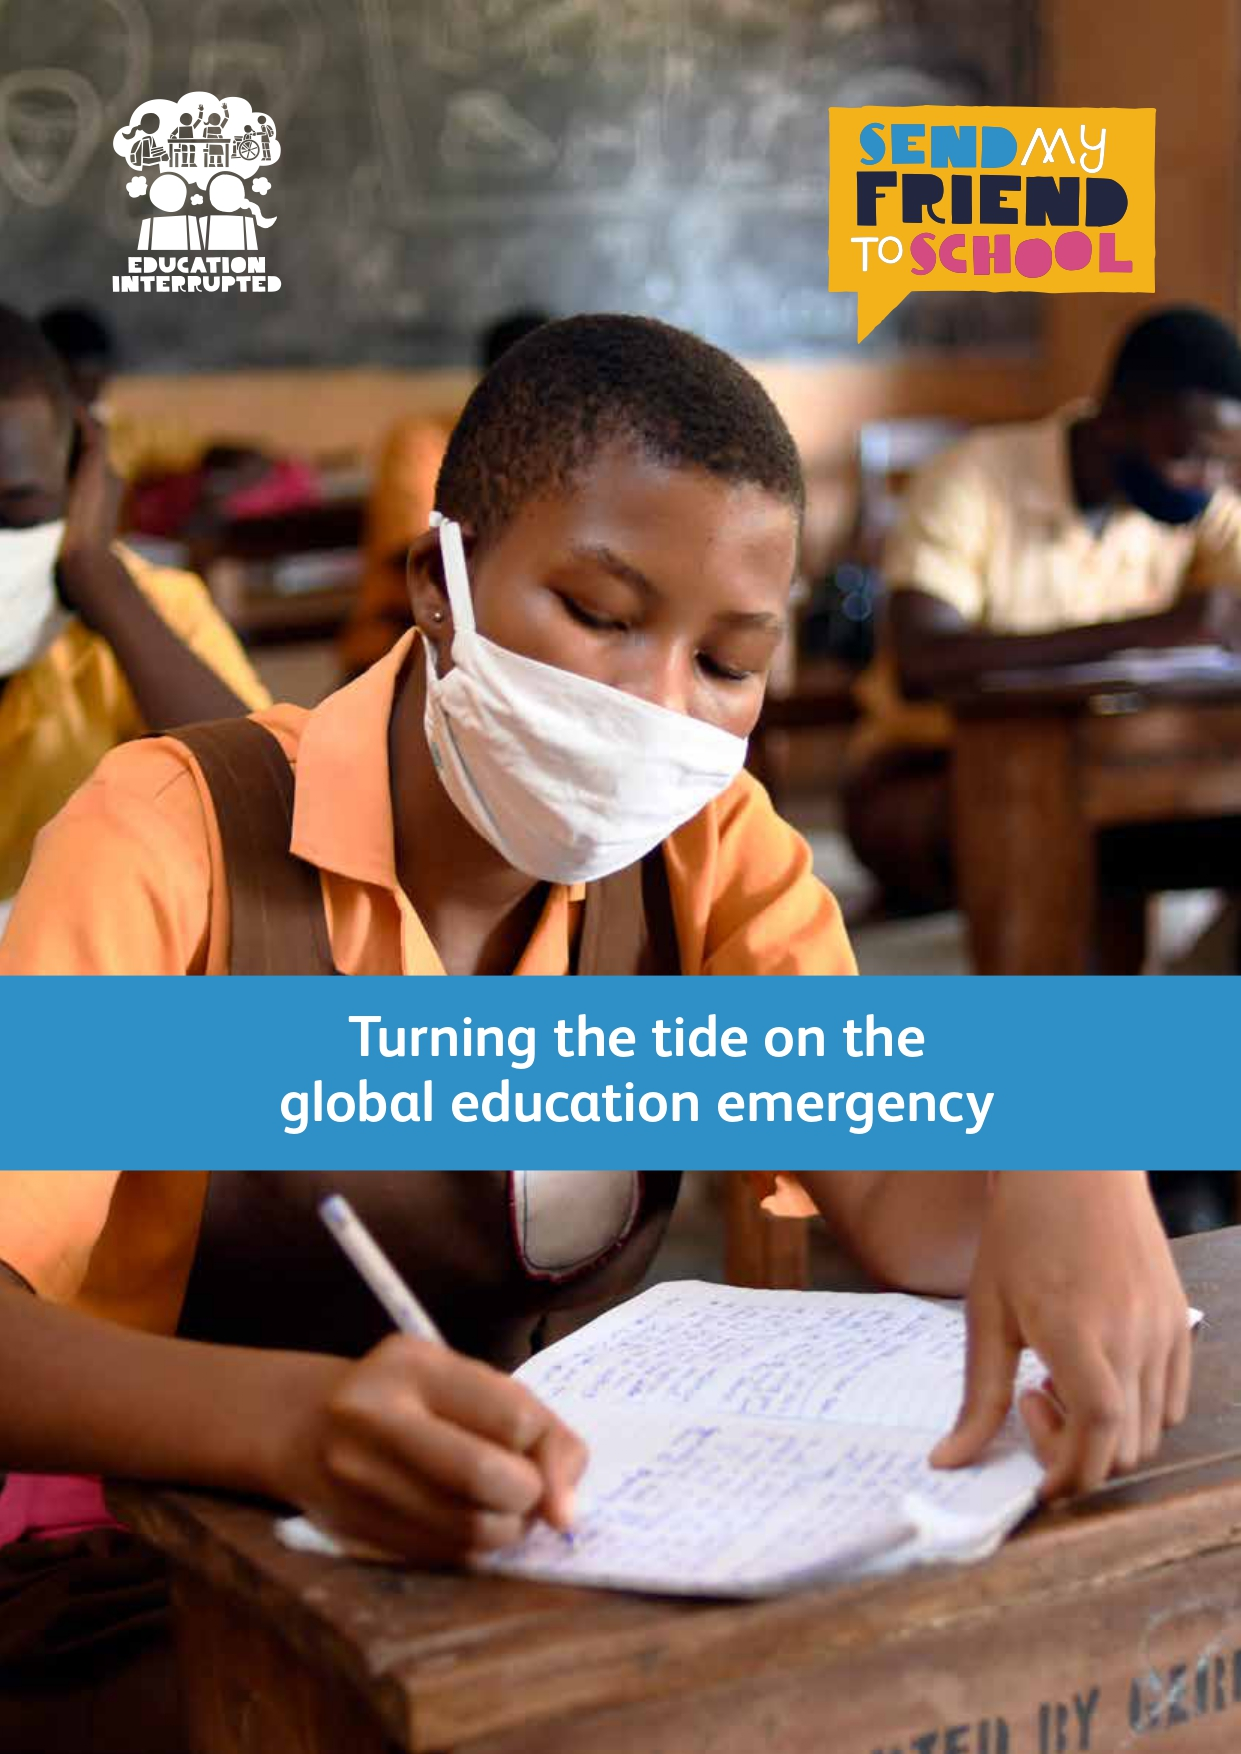 Turning the tide on the global education emergency